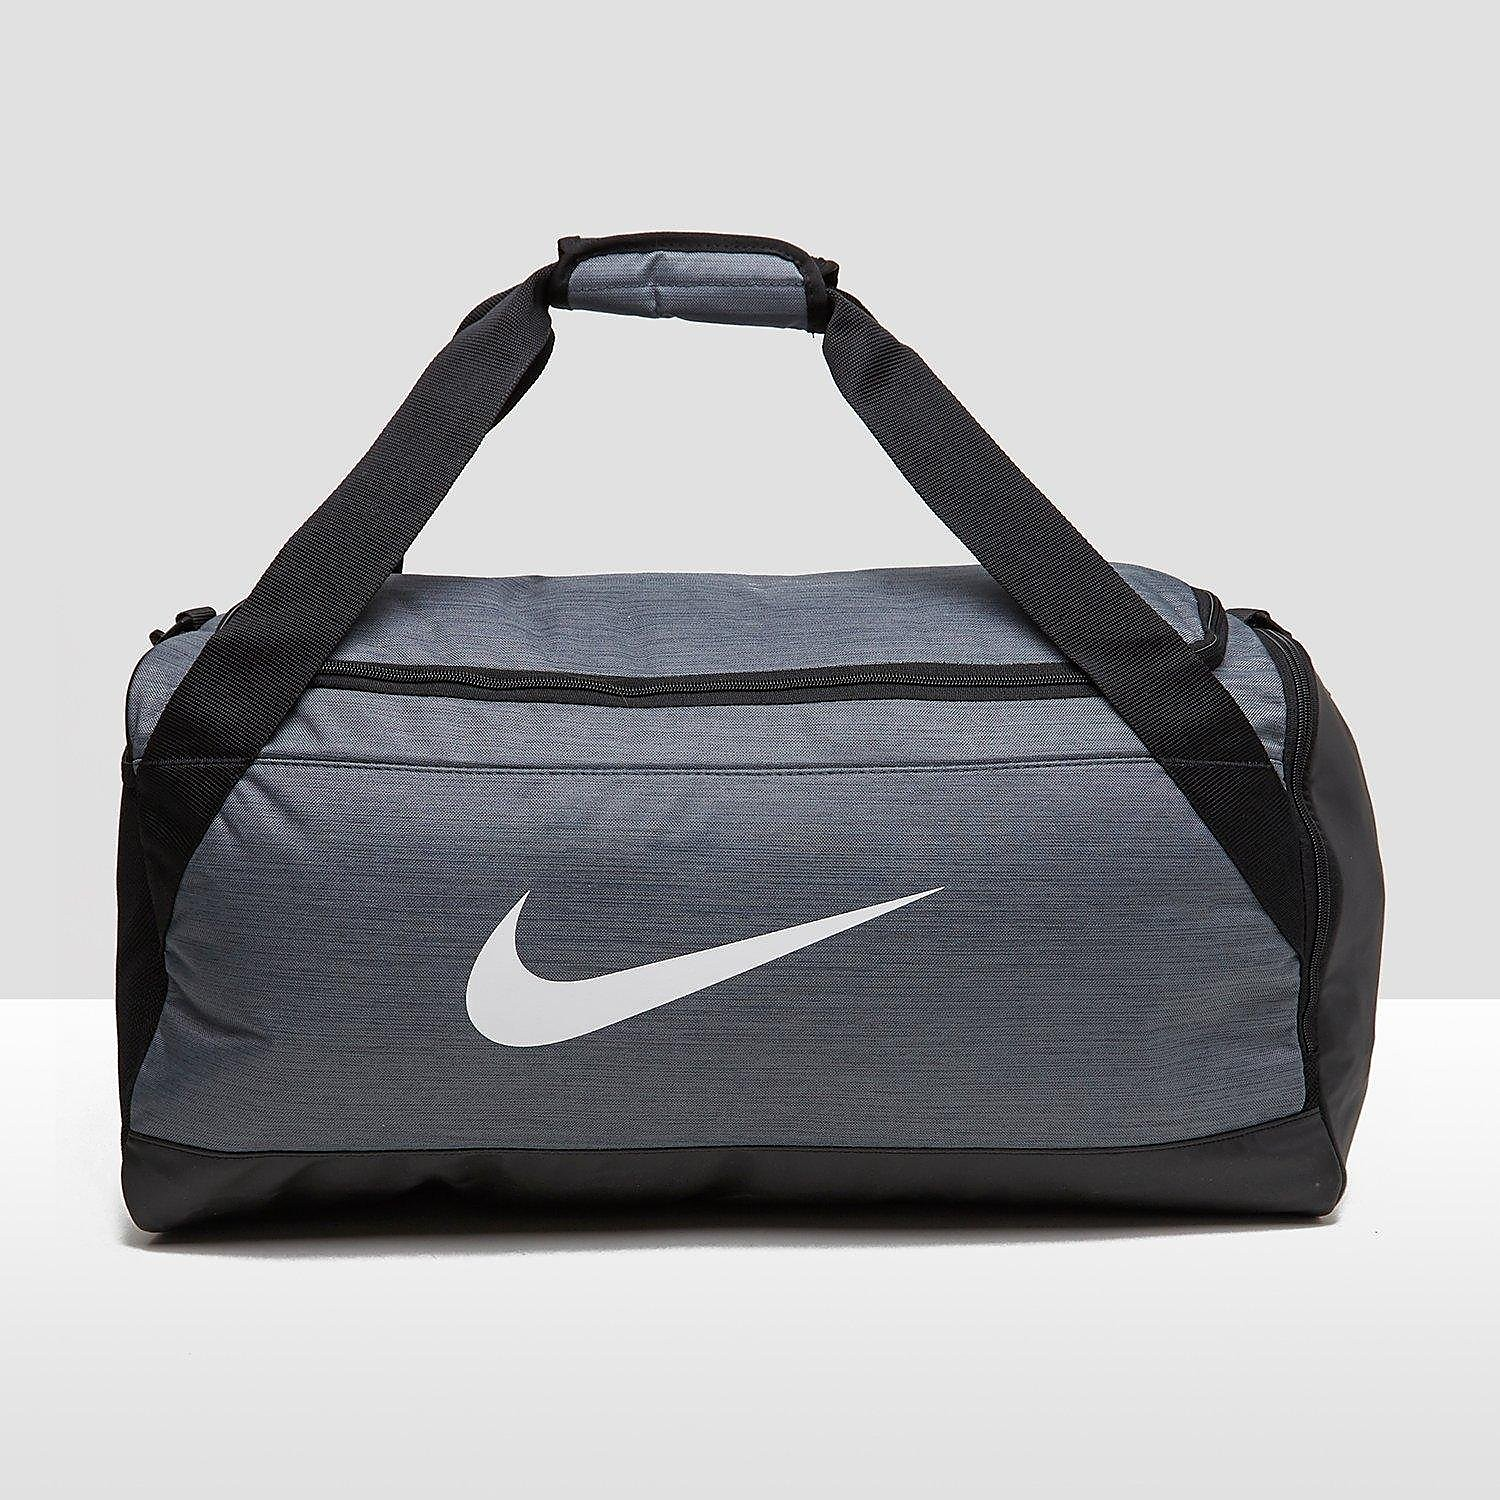 NIKE BRASILIA DUFFEL MEDIUM